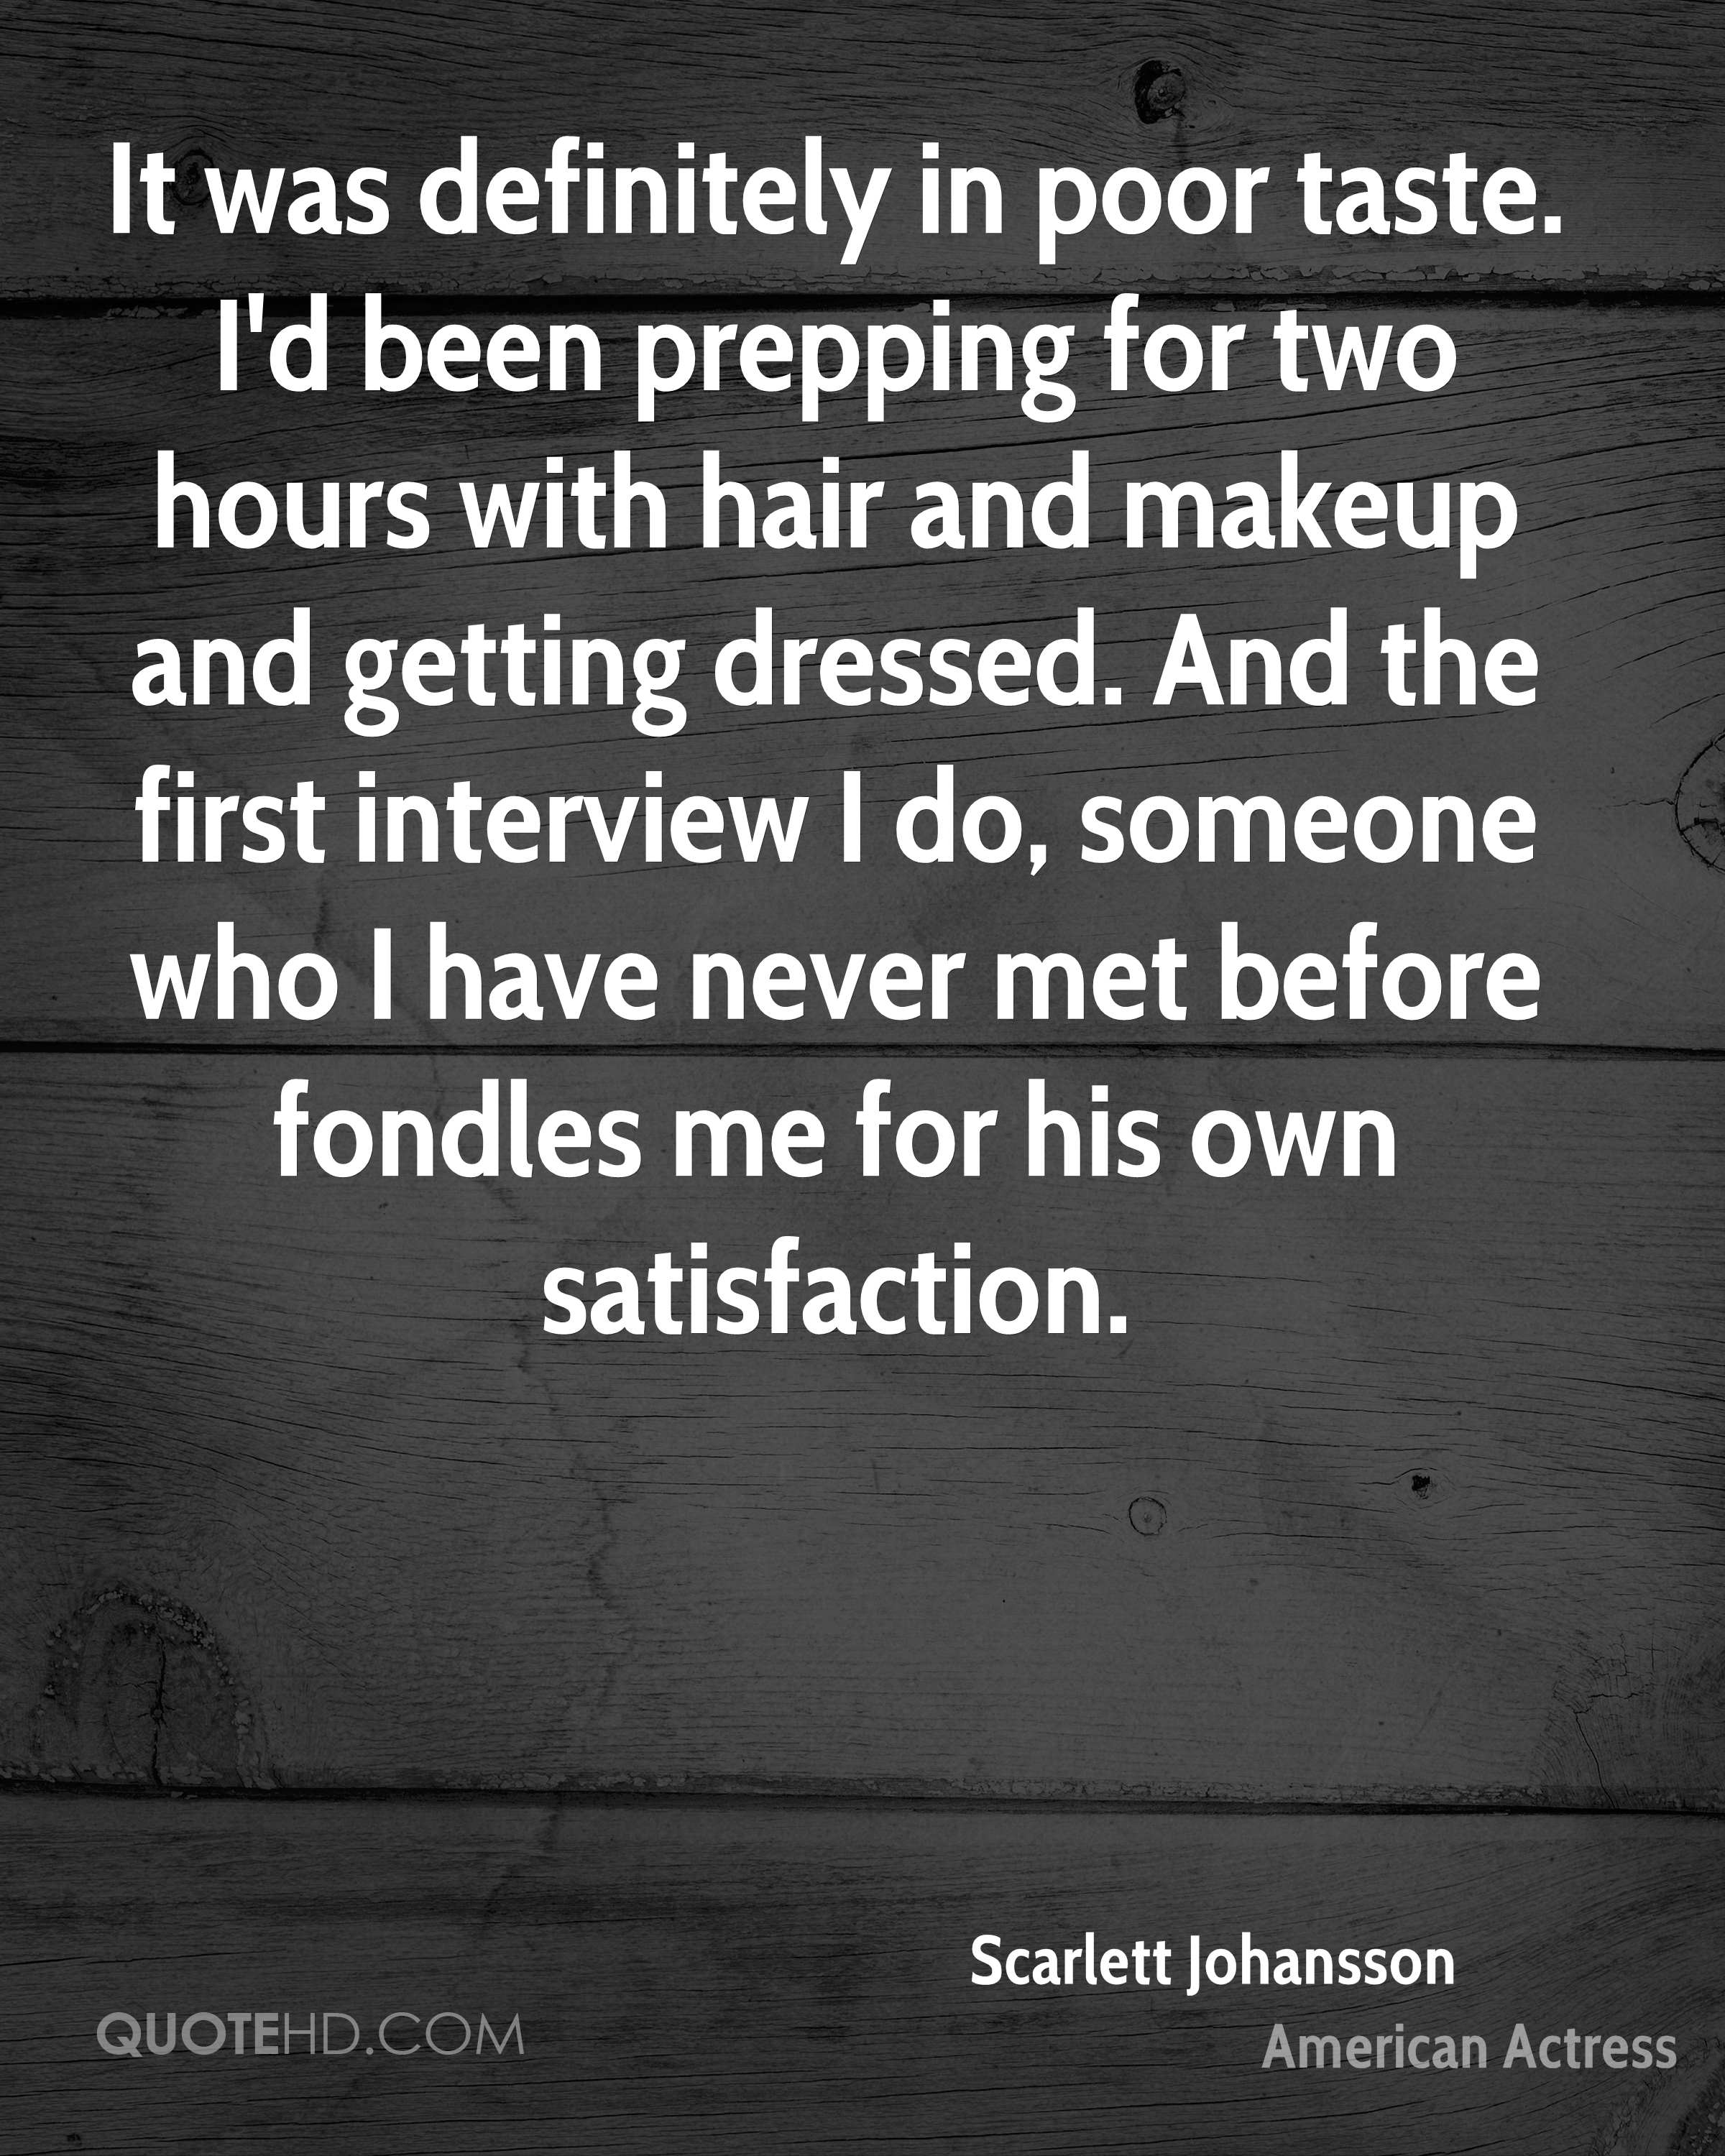 It was definitely in poor taste. I'd been prepping for two hours with hair and makeup and getting dressed. And the first interview I do, someone who I have never met before fondles me for his own satisfaction.